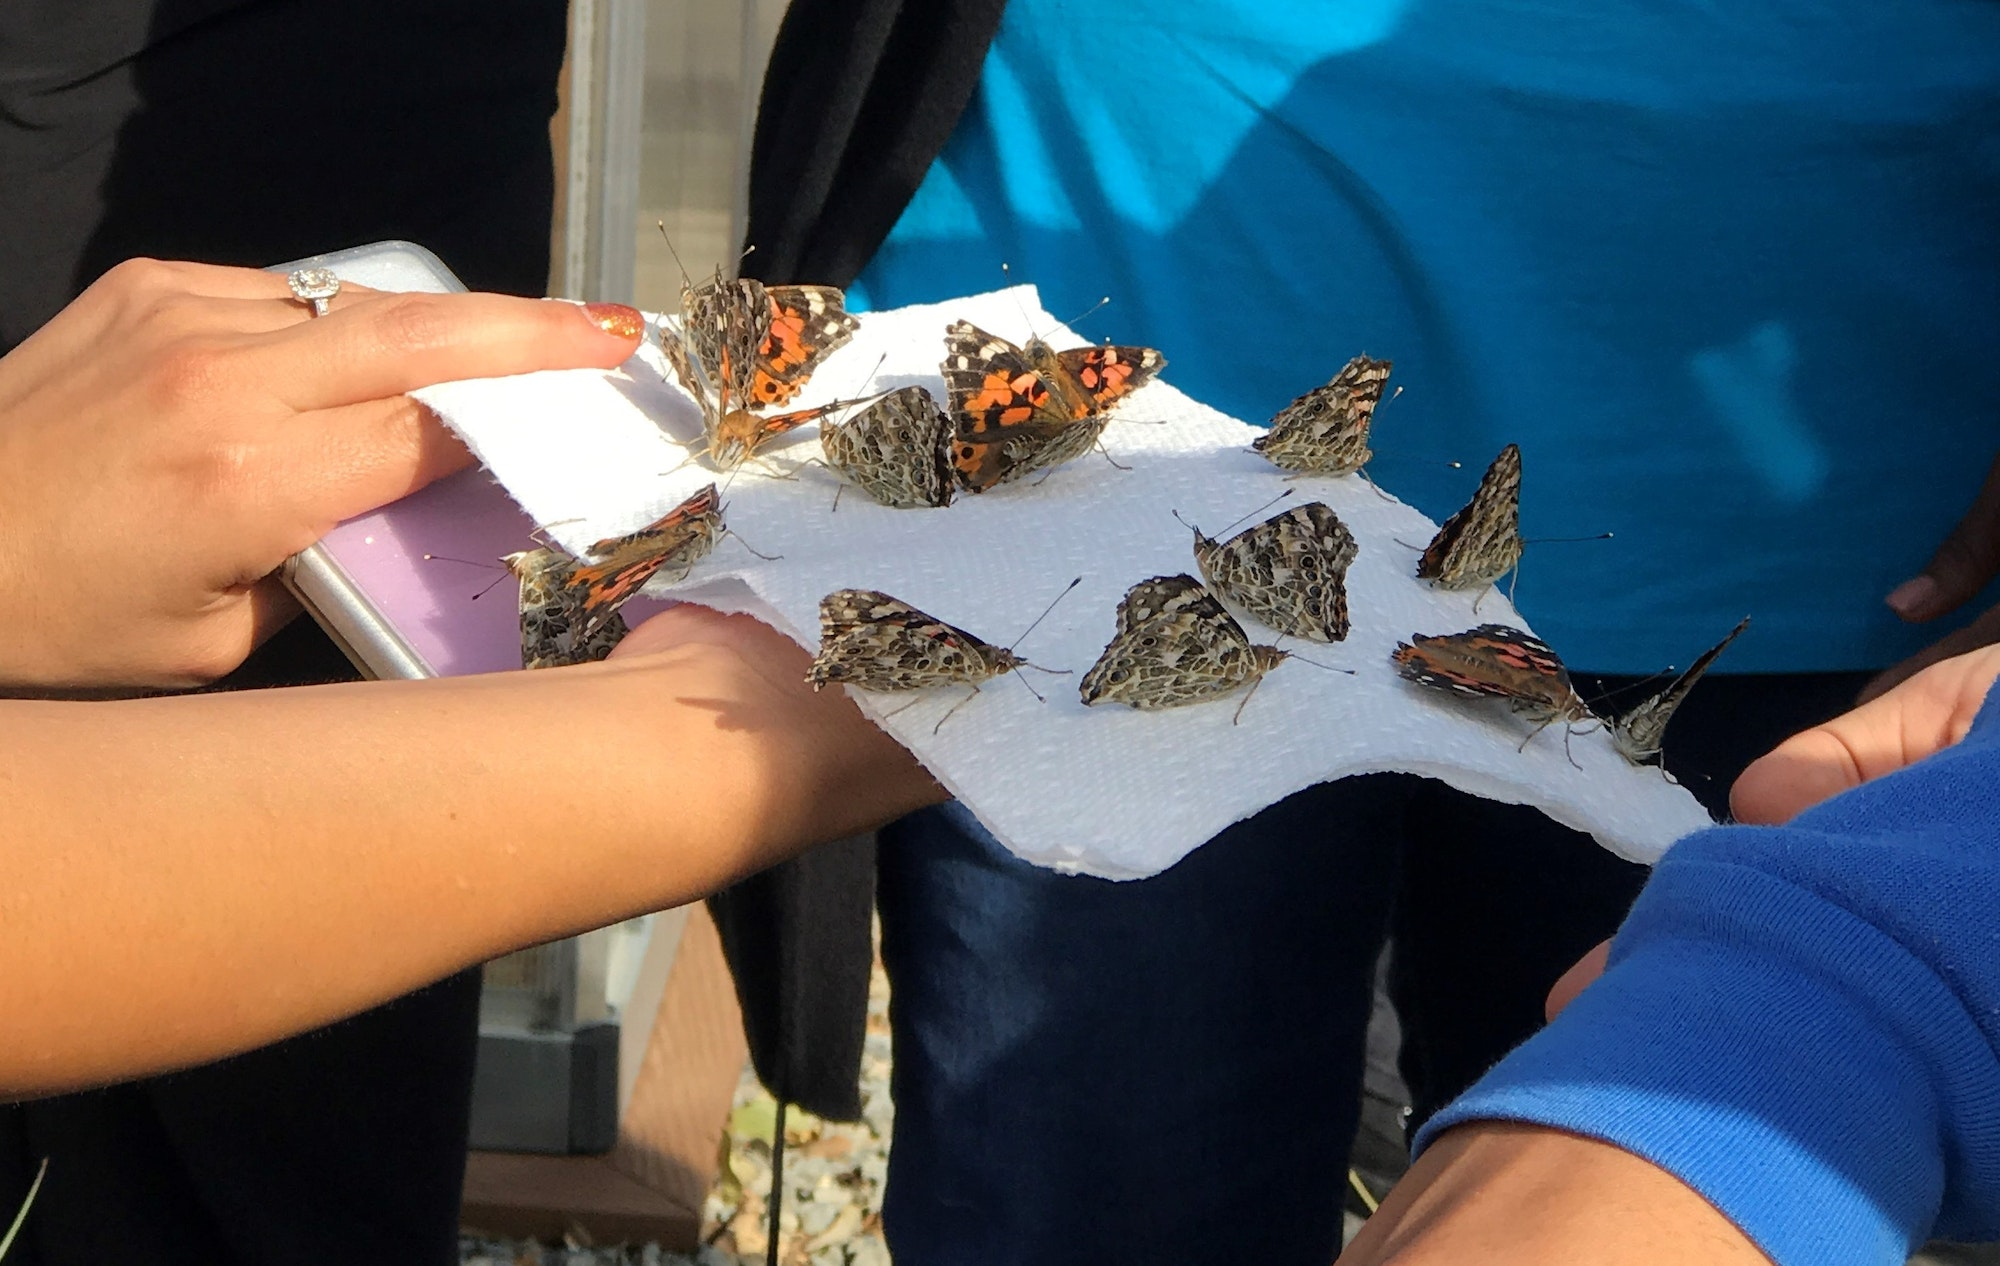 May contain: Students holding butterflies that were raised and now getting released.